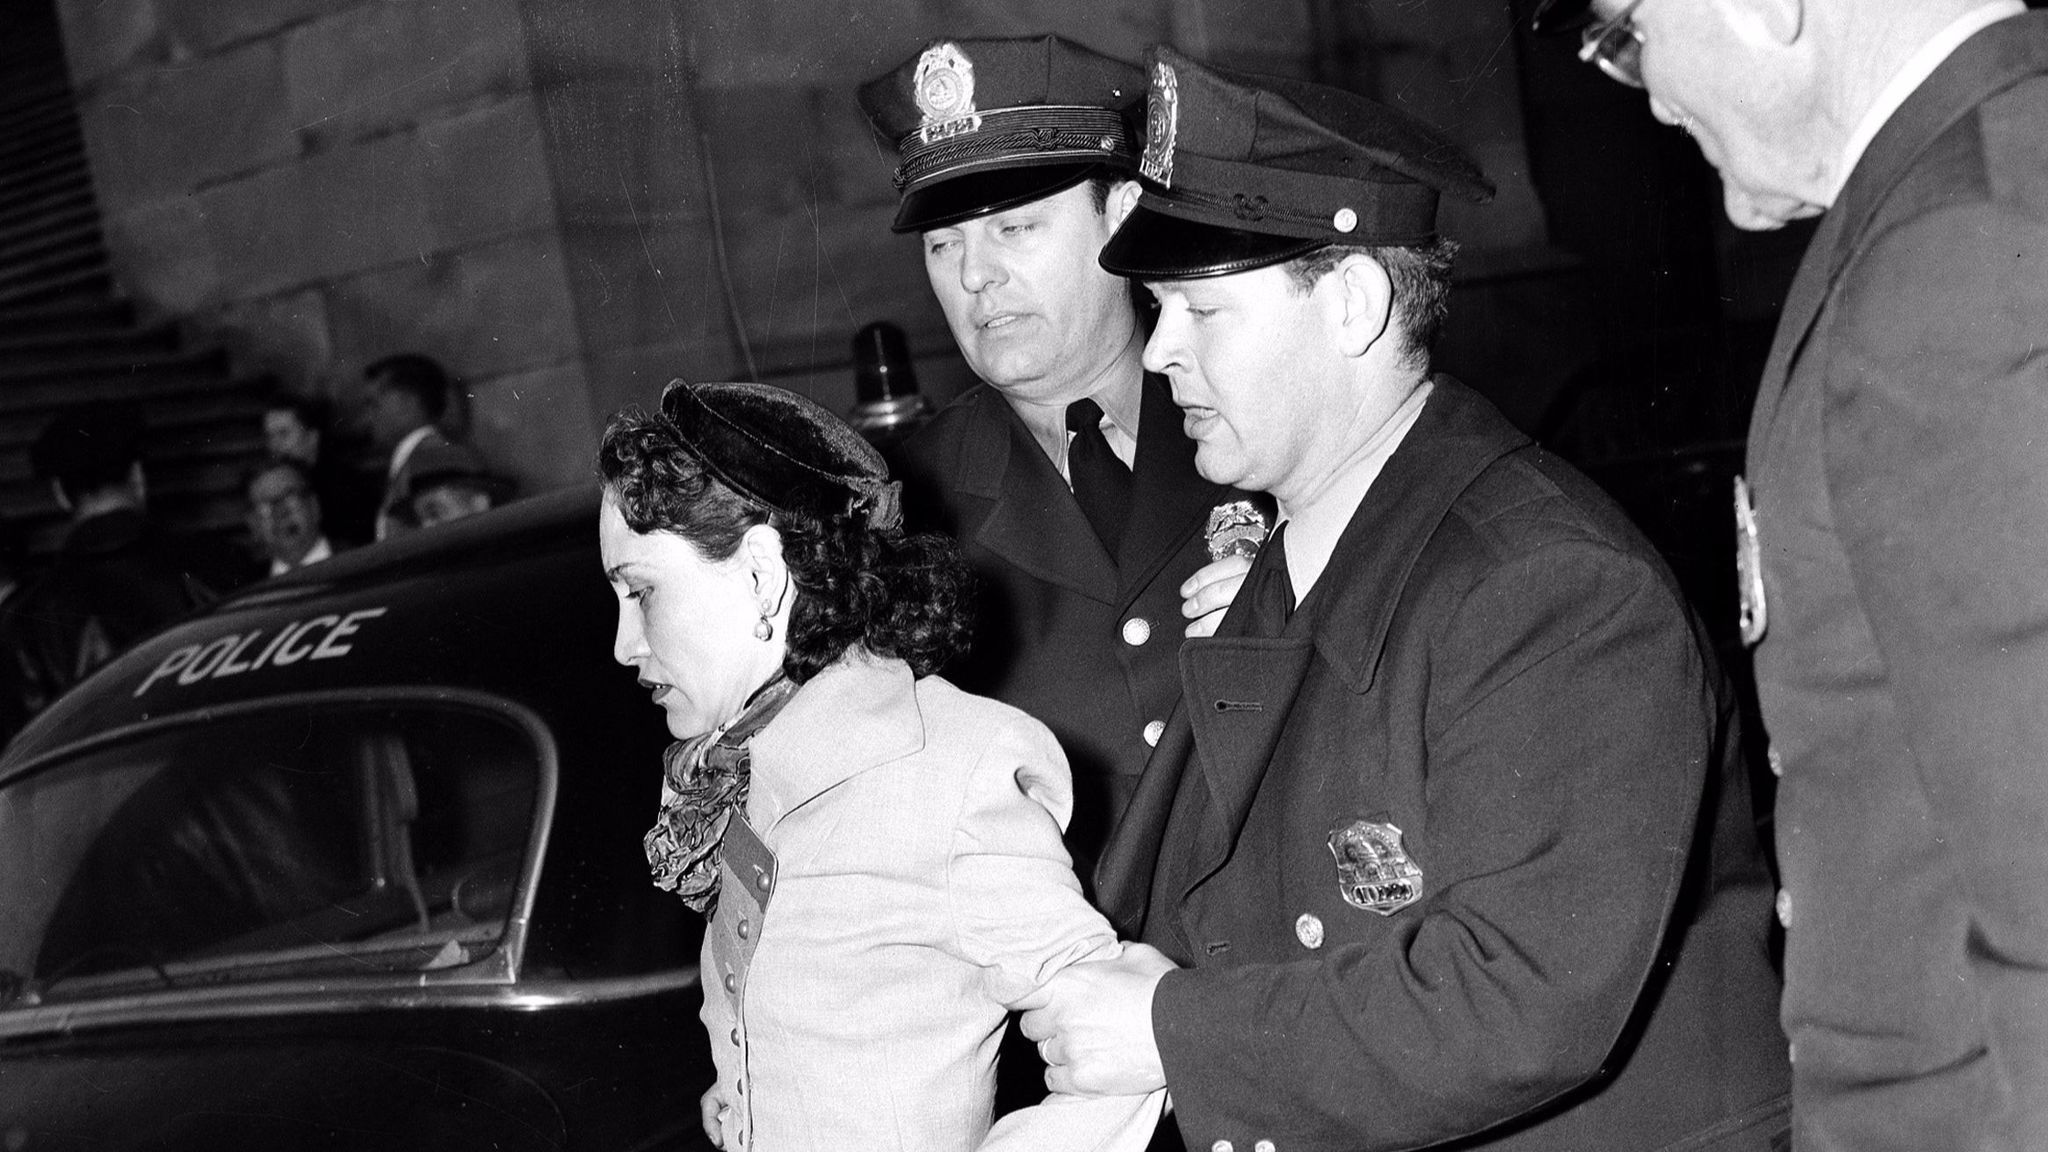 Puerto Rican nationalist Lolita Lebron is led away by police after she and others began shooting in the House chamber at the Capitol in 1954.